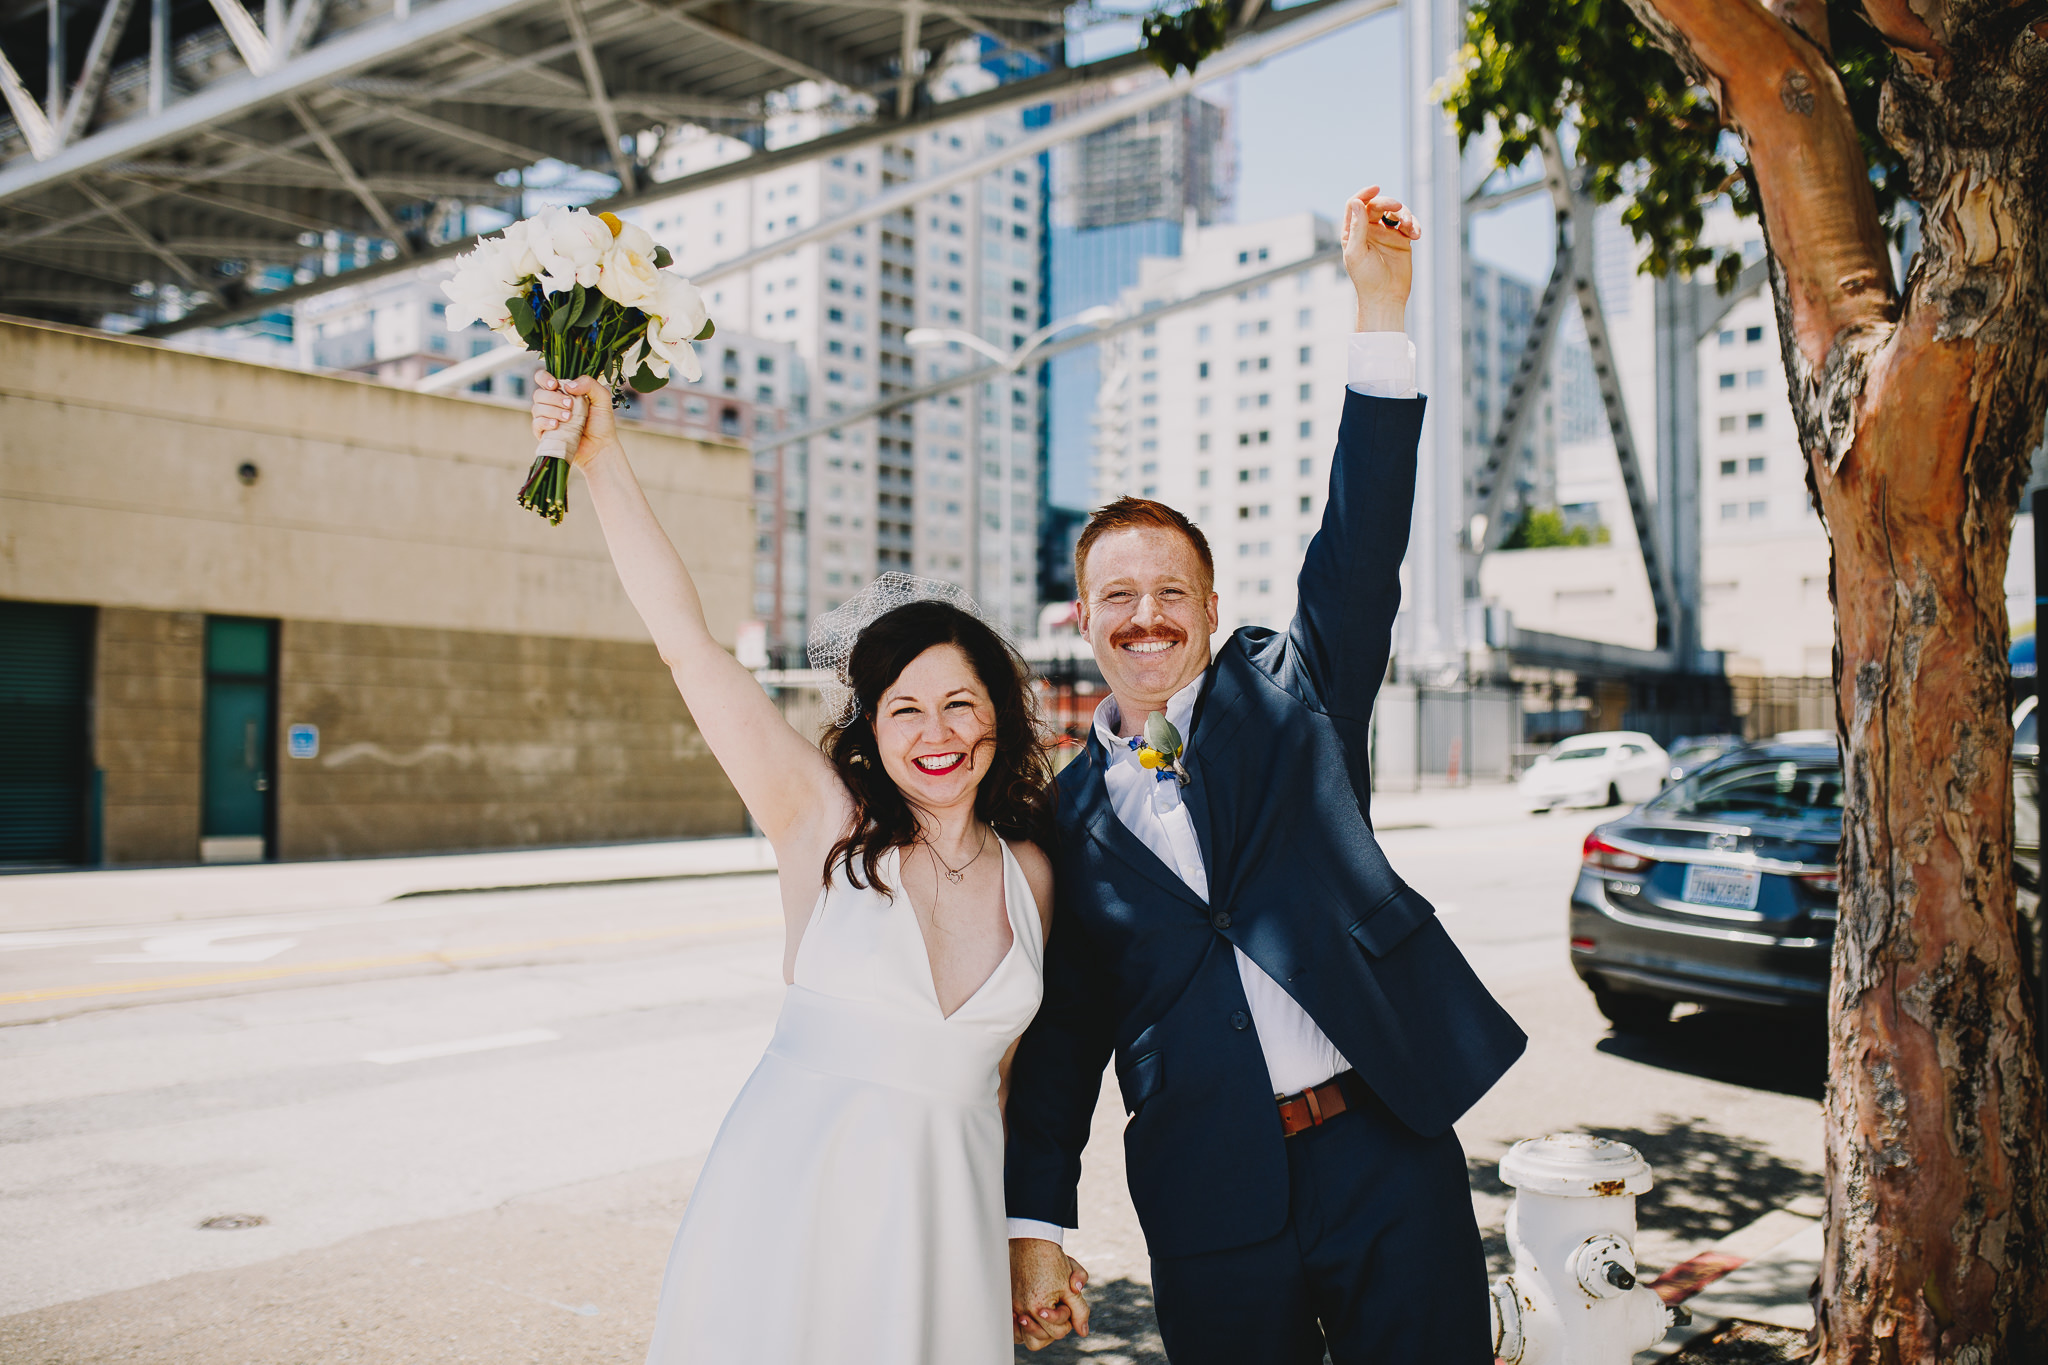 Archer Inspired Photography SF City Hall Elopement Wedding Lifestyle Documentary Affordable Photographer-341.jpg